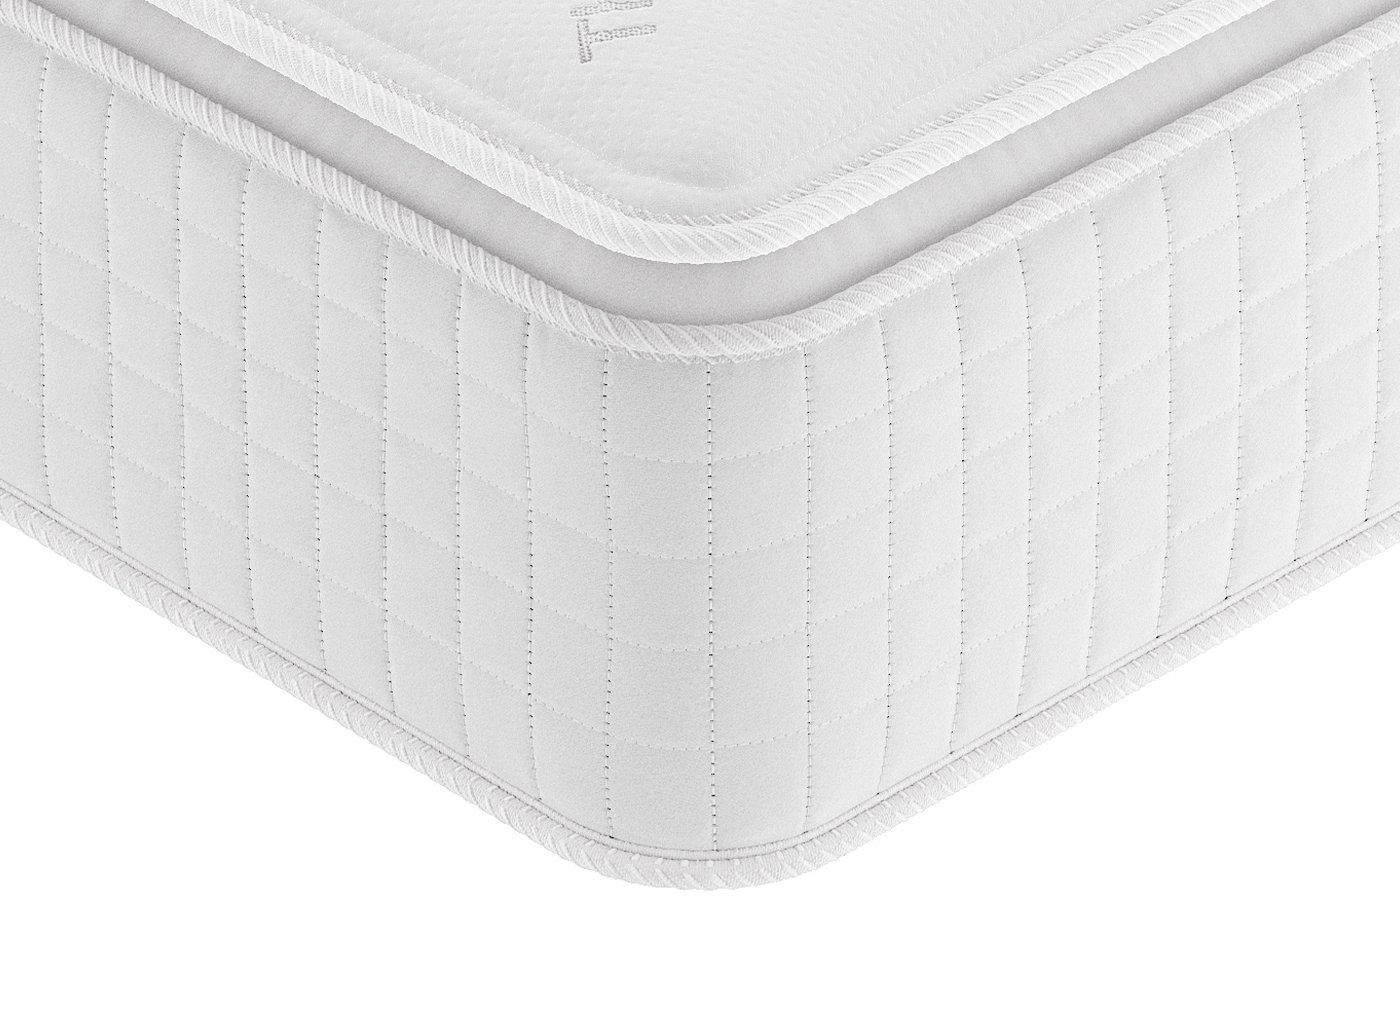 Therapur actigel harmonic 2200 sk mattress zipped 6'0 super king